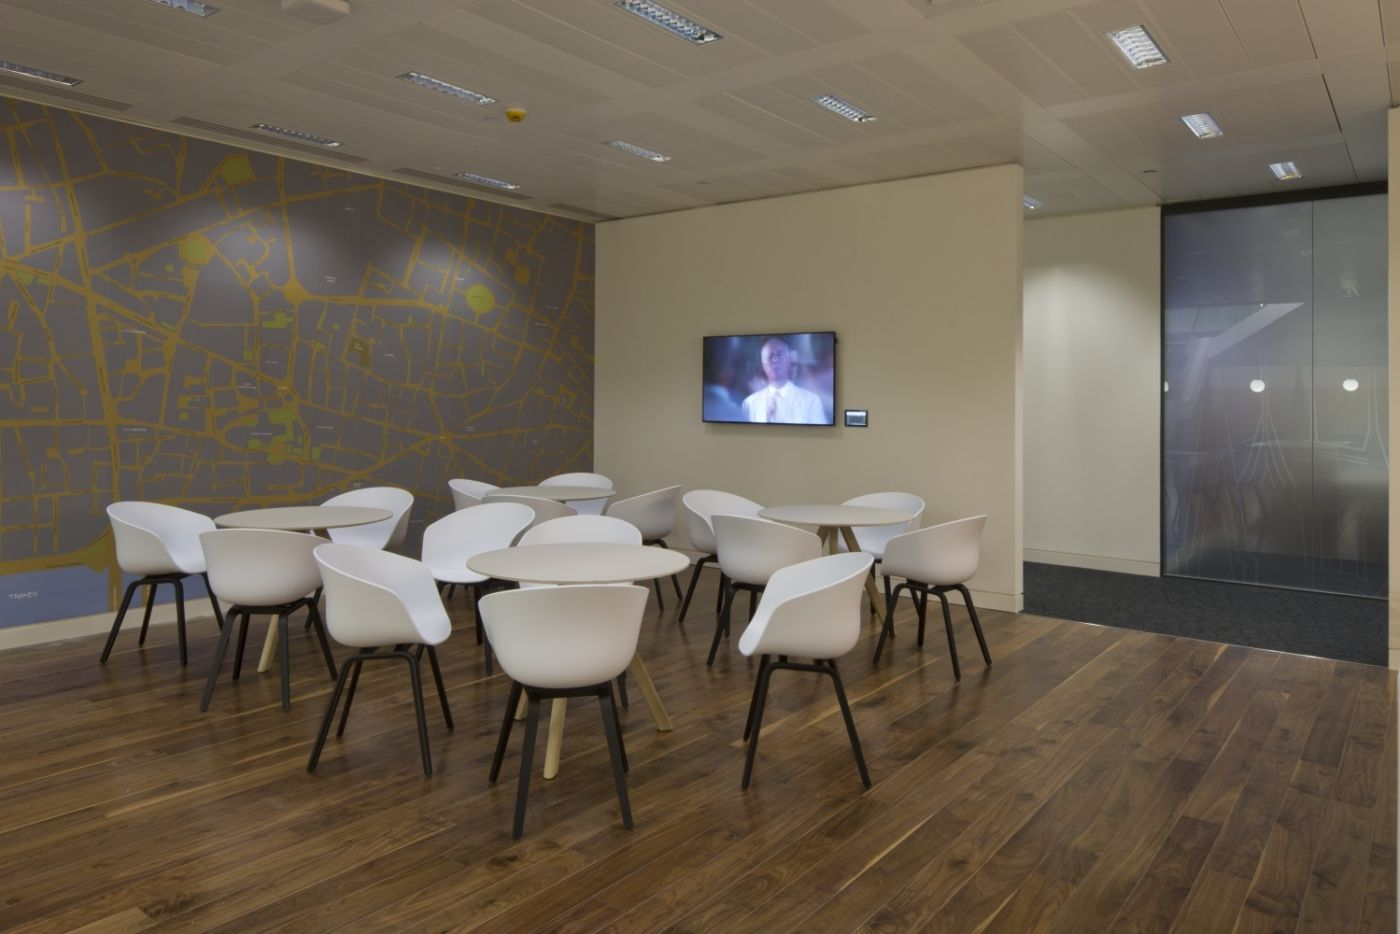 Office with floorboards and modern seating